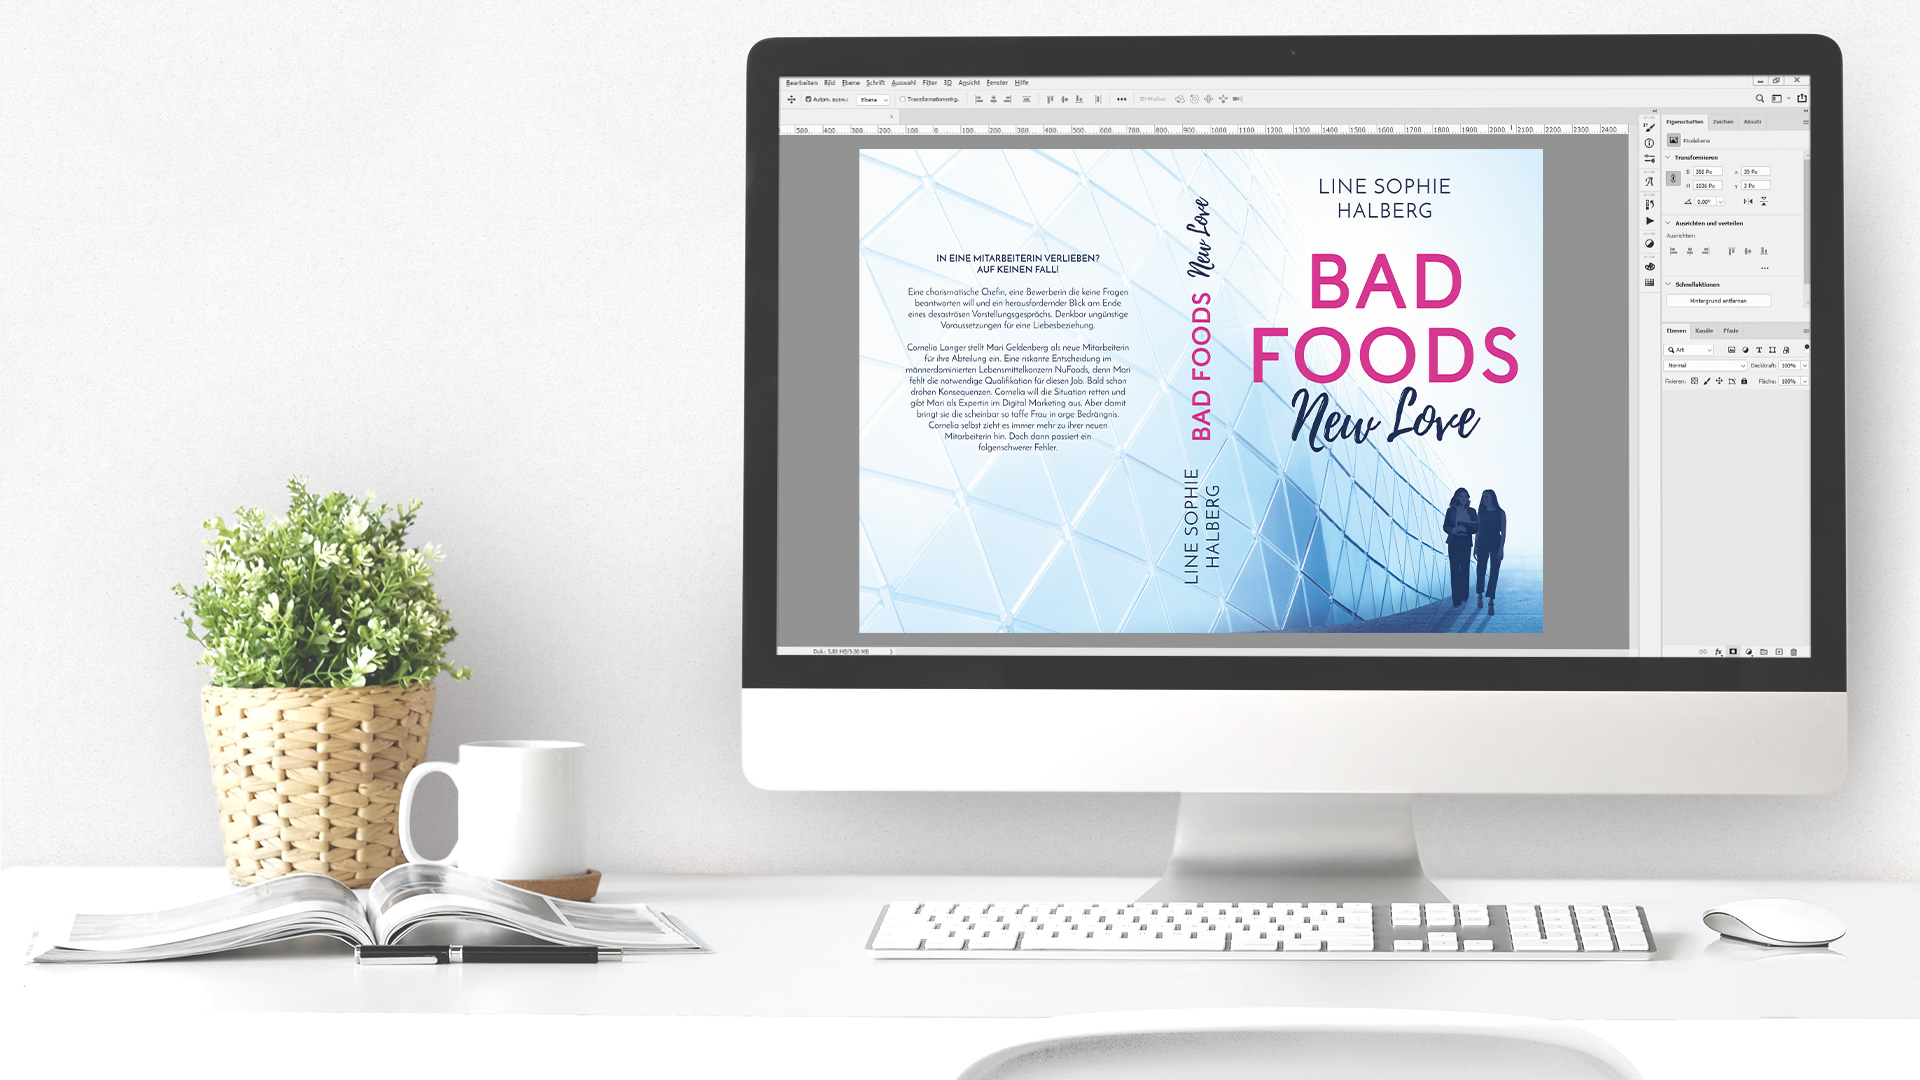 Bad Foods – New Love